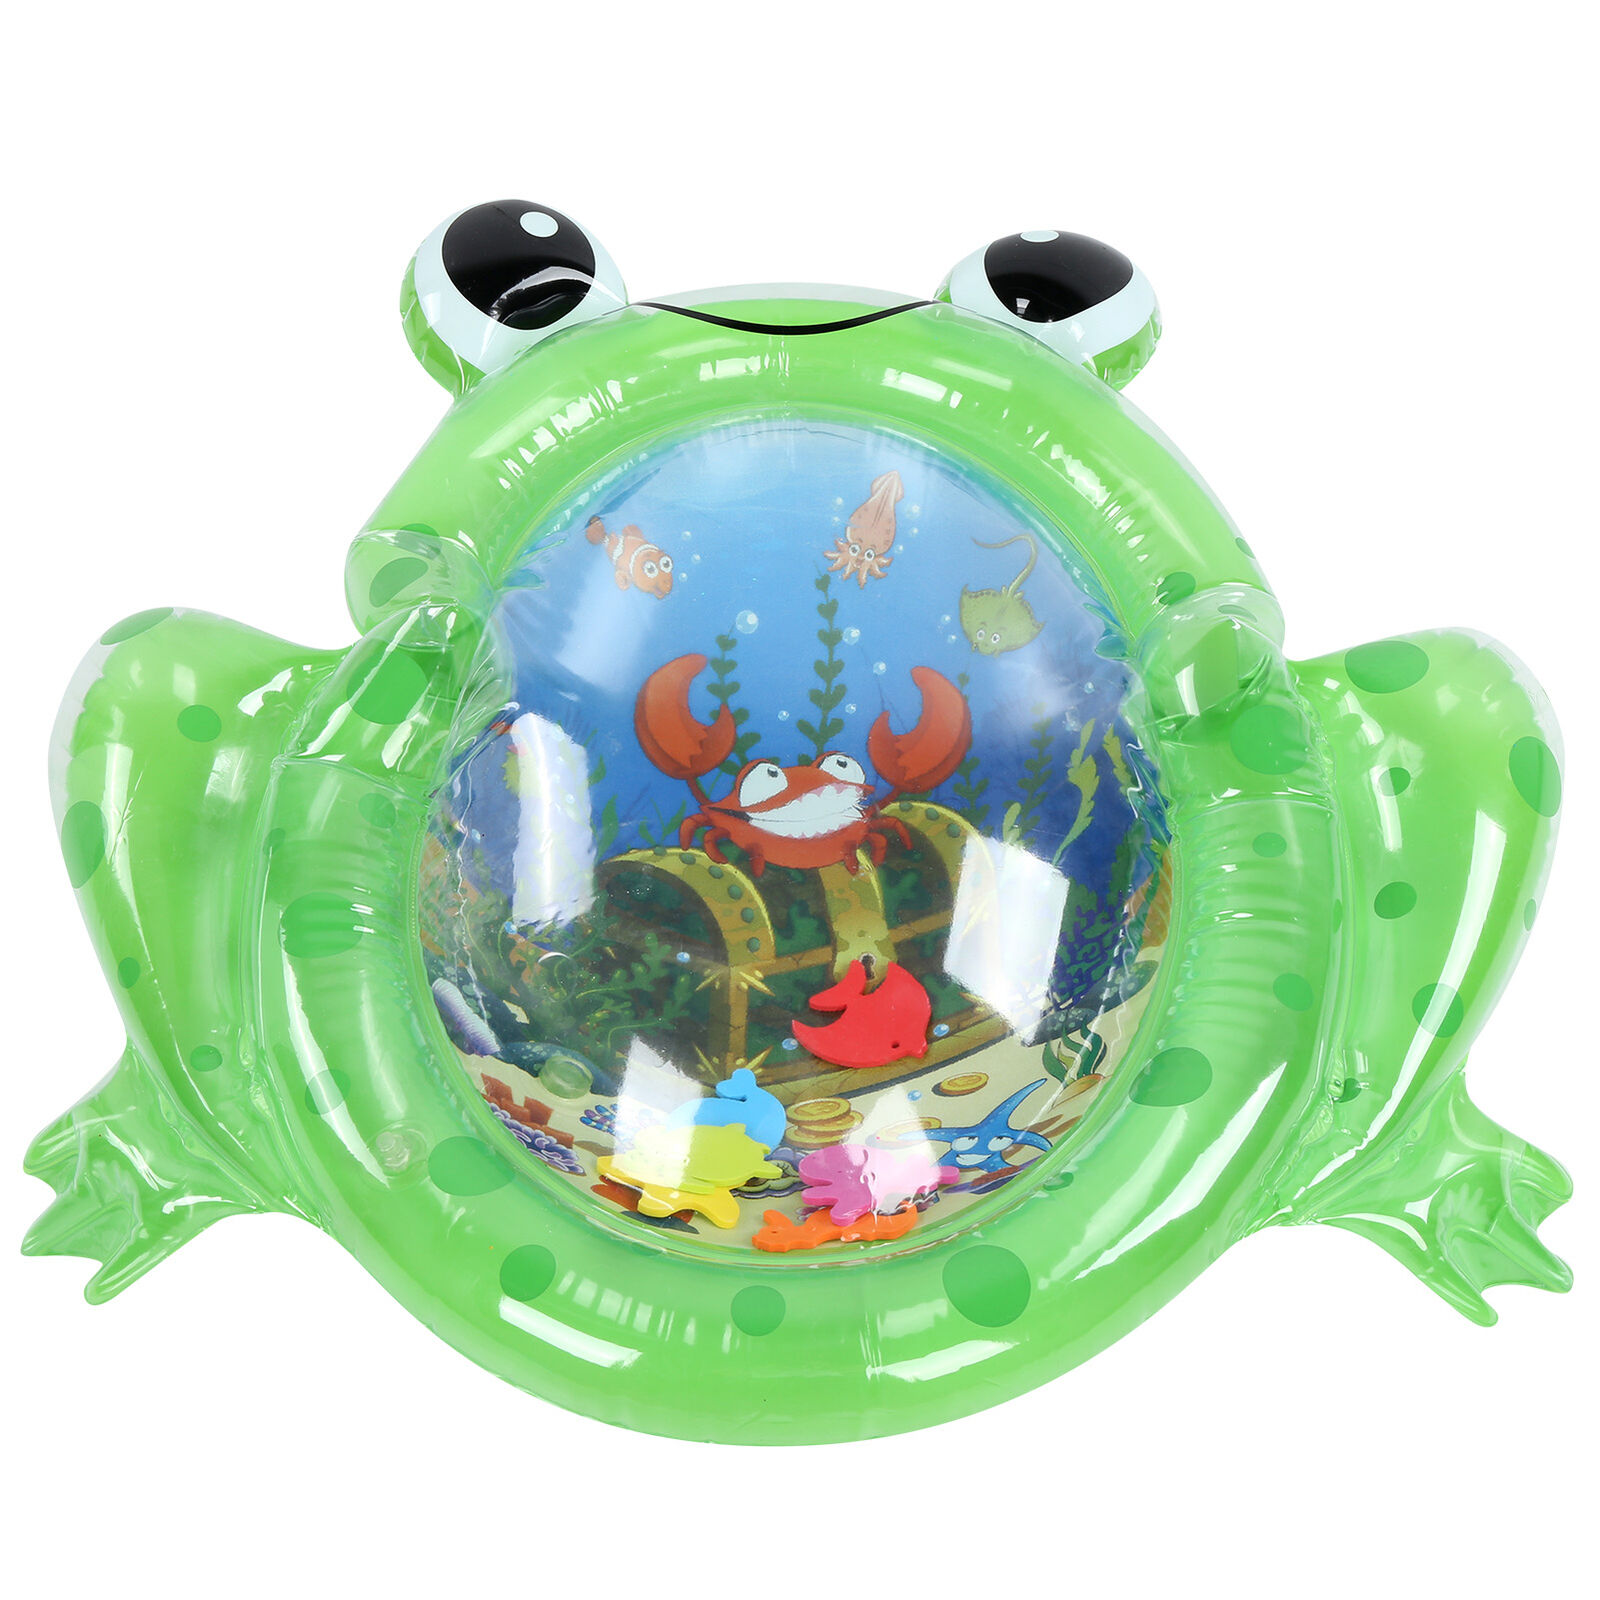 1Pcs PVC Tummy Time Baby Water Play Mat Sensory Toys Gift Fit for Kid Babies